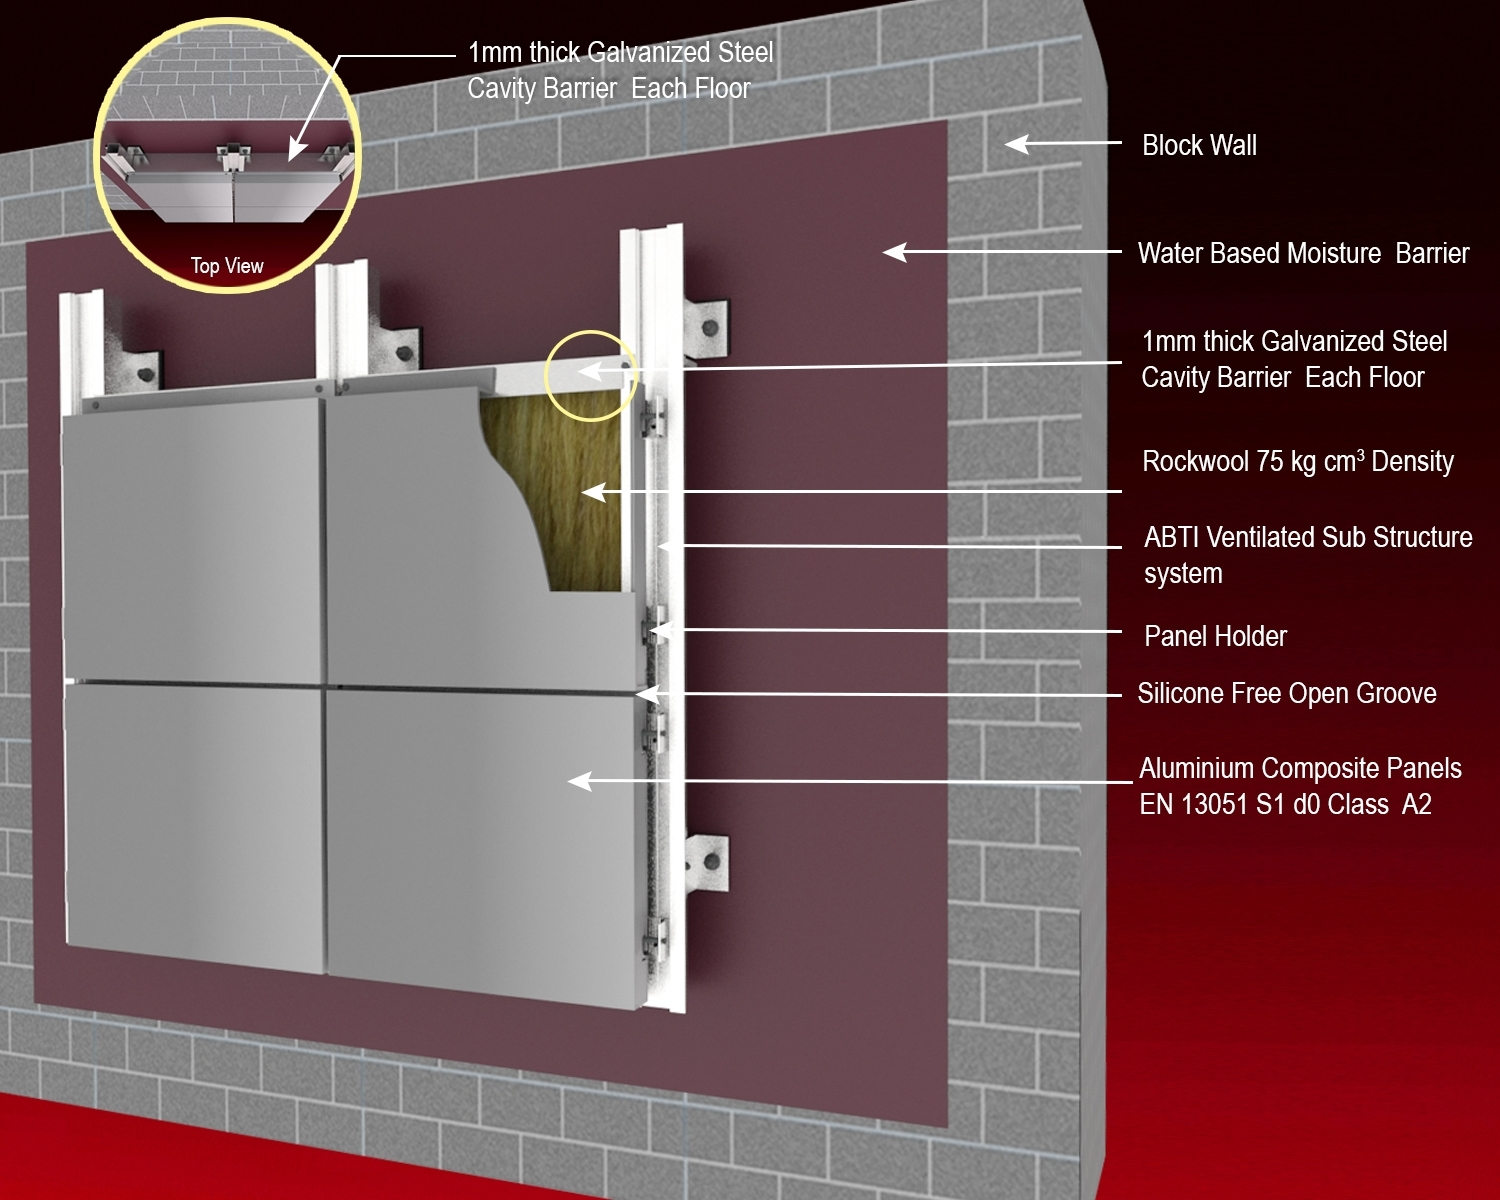 Stalcor Alubond A2 cladding panels installed with ABTI sub-structure will prevent rapid spread of fires in multi-level buildings